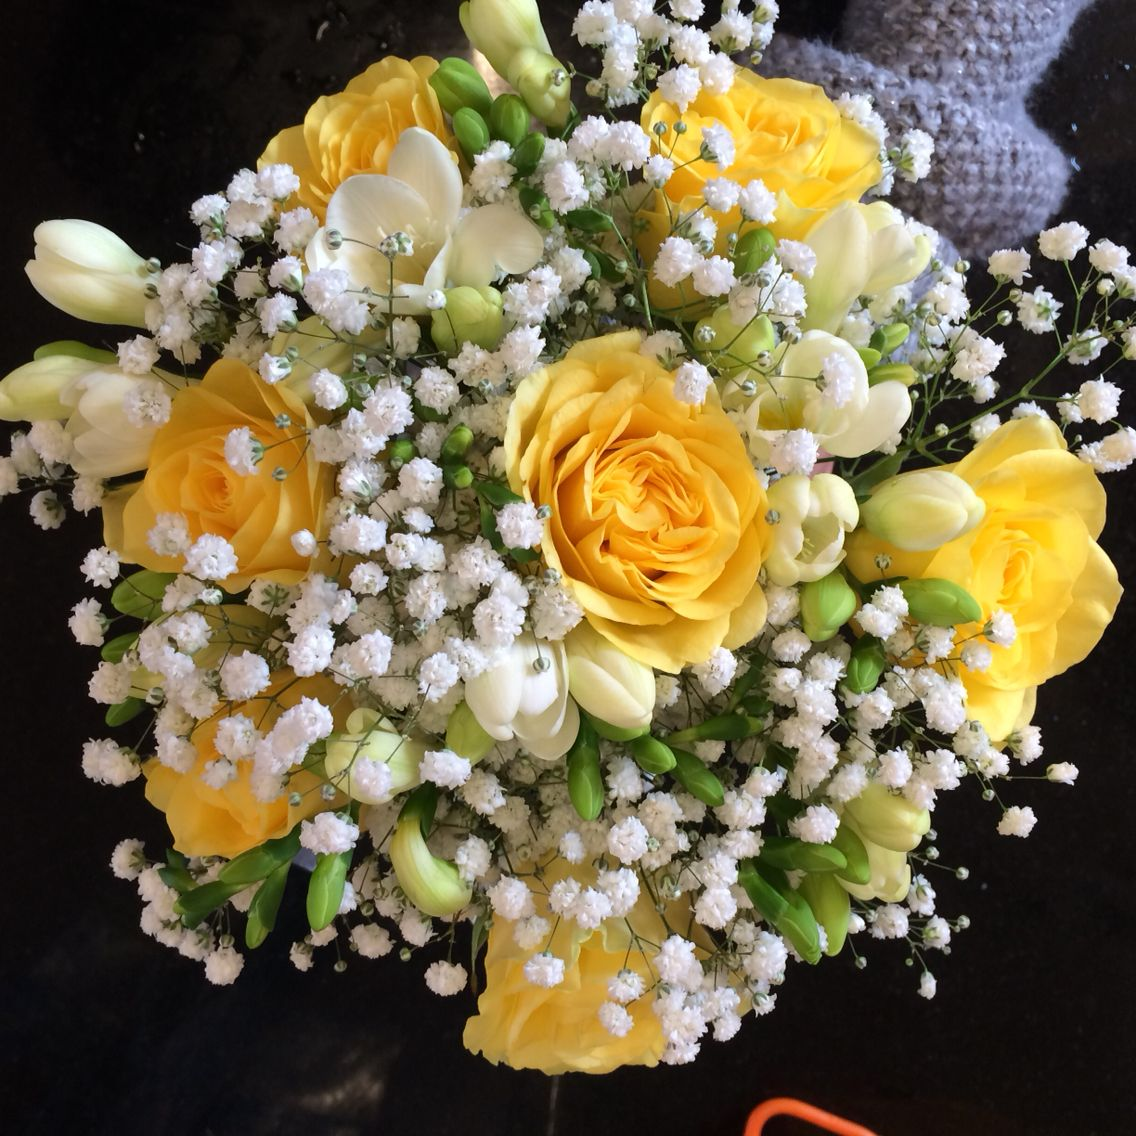 Wedding Flowers Yellow Roses: Yellow Wedding Flowers Yellow Roses With Freesia And Gyp